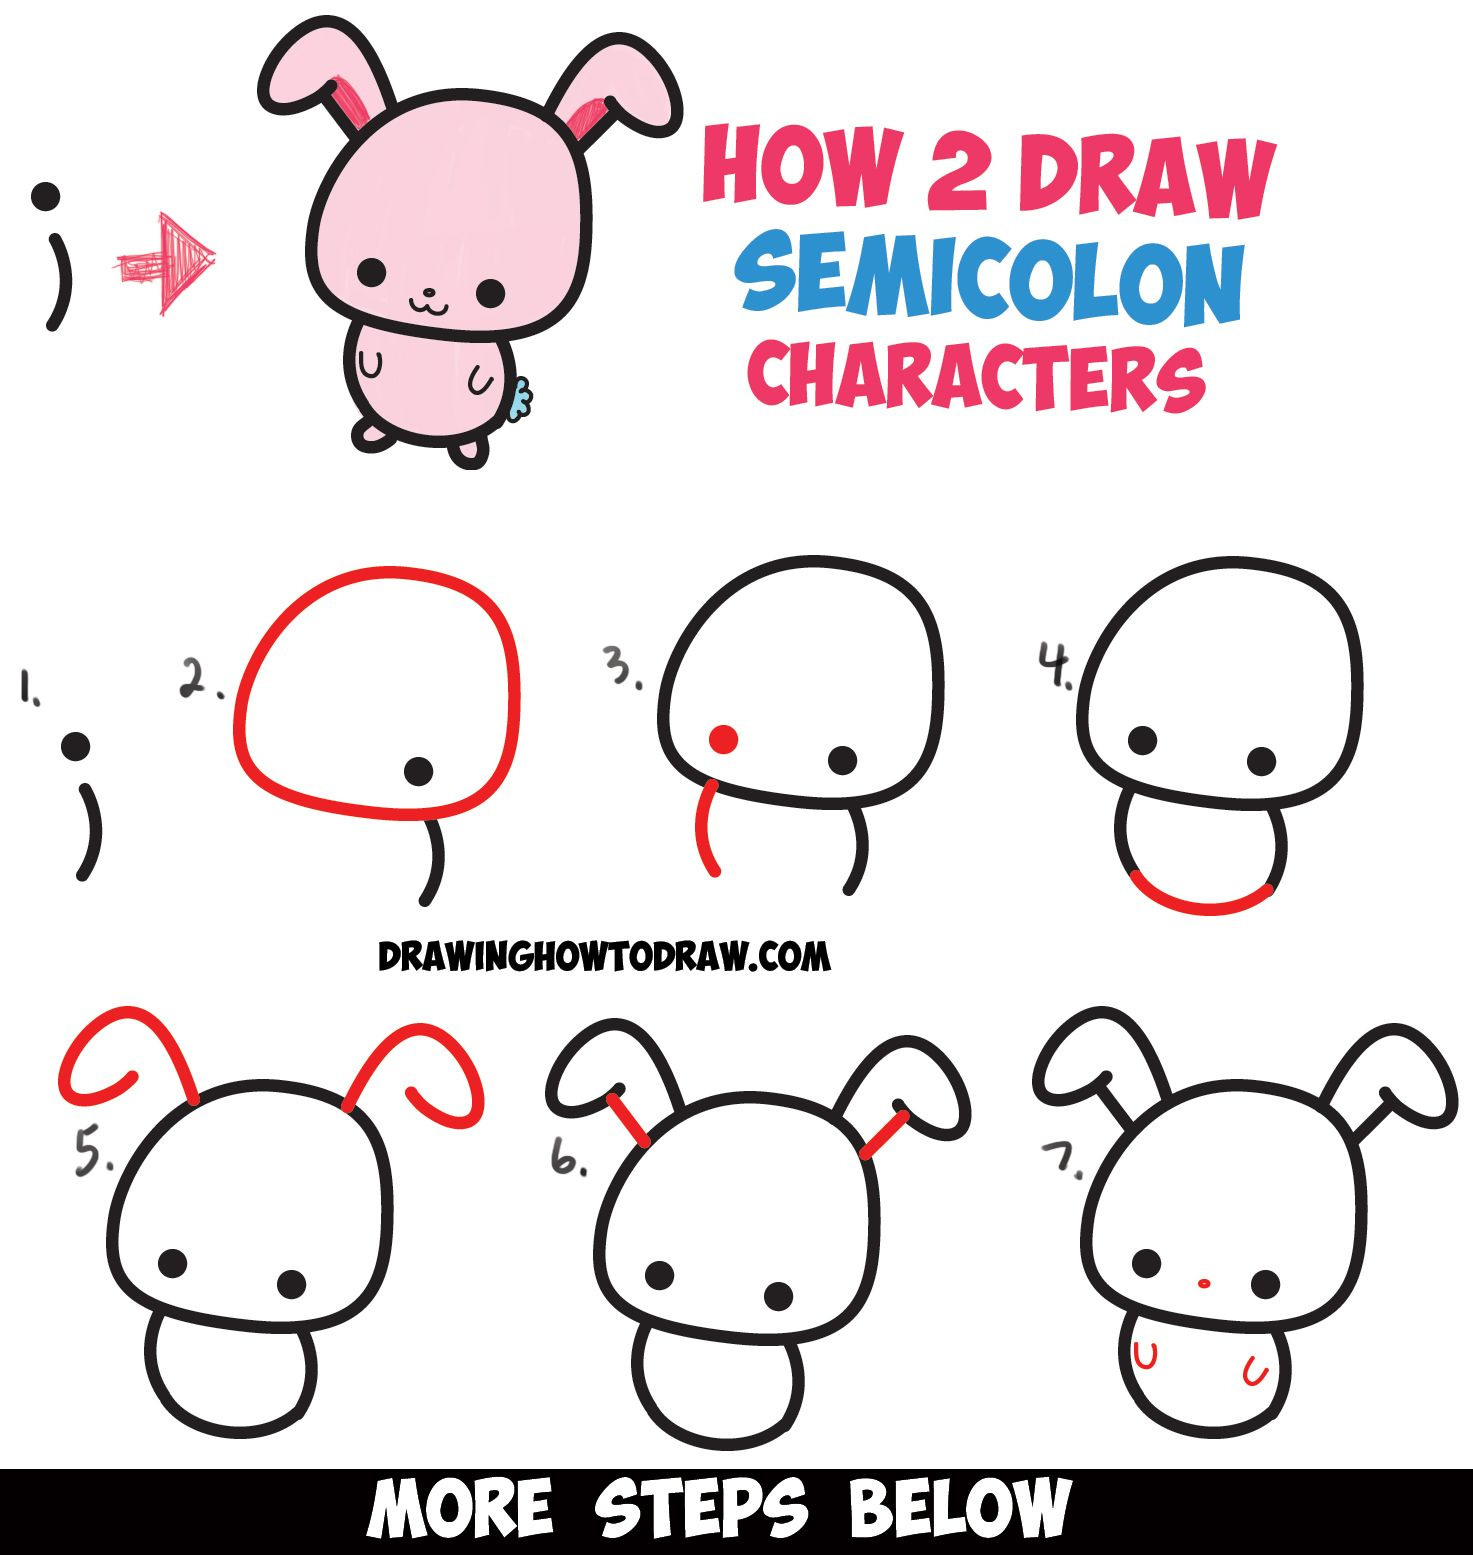 The editors of publications international, ltd. How to Draw Cute Cartoon Characters from Semicolons - Easy ...